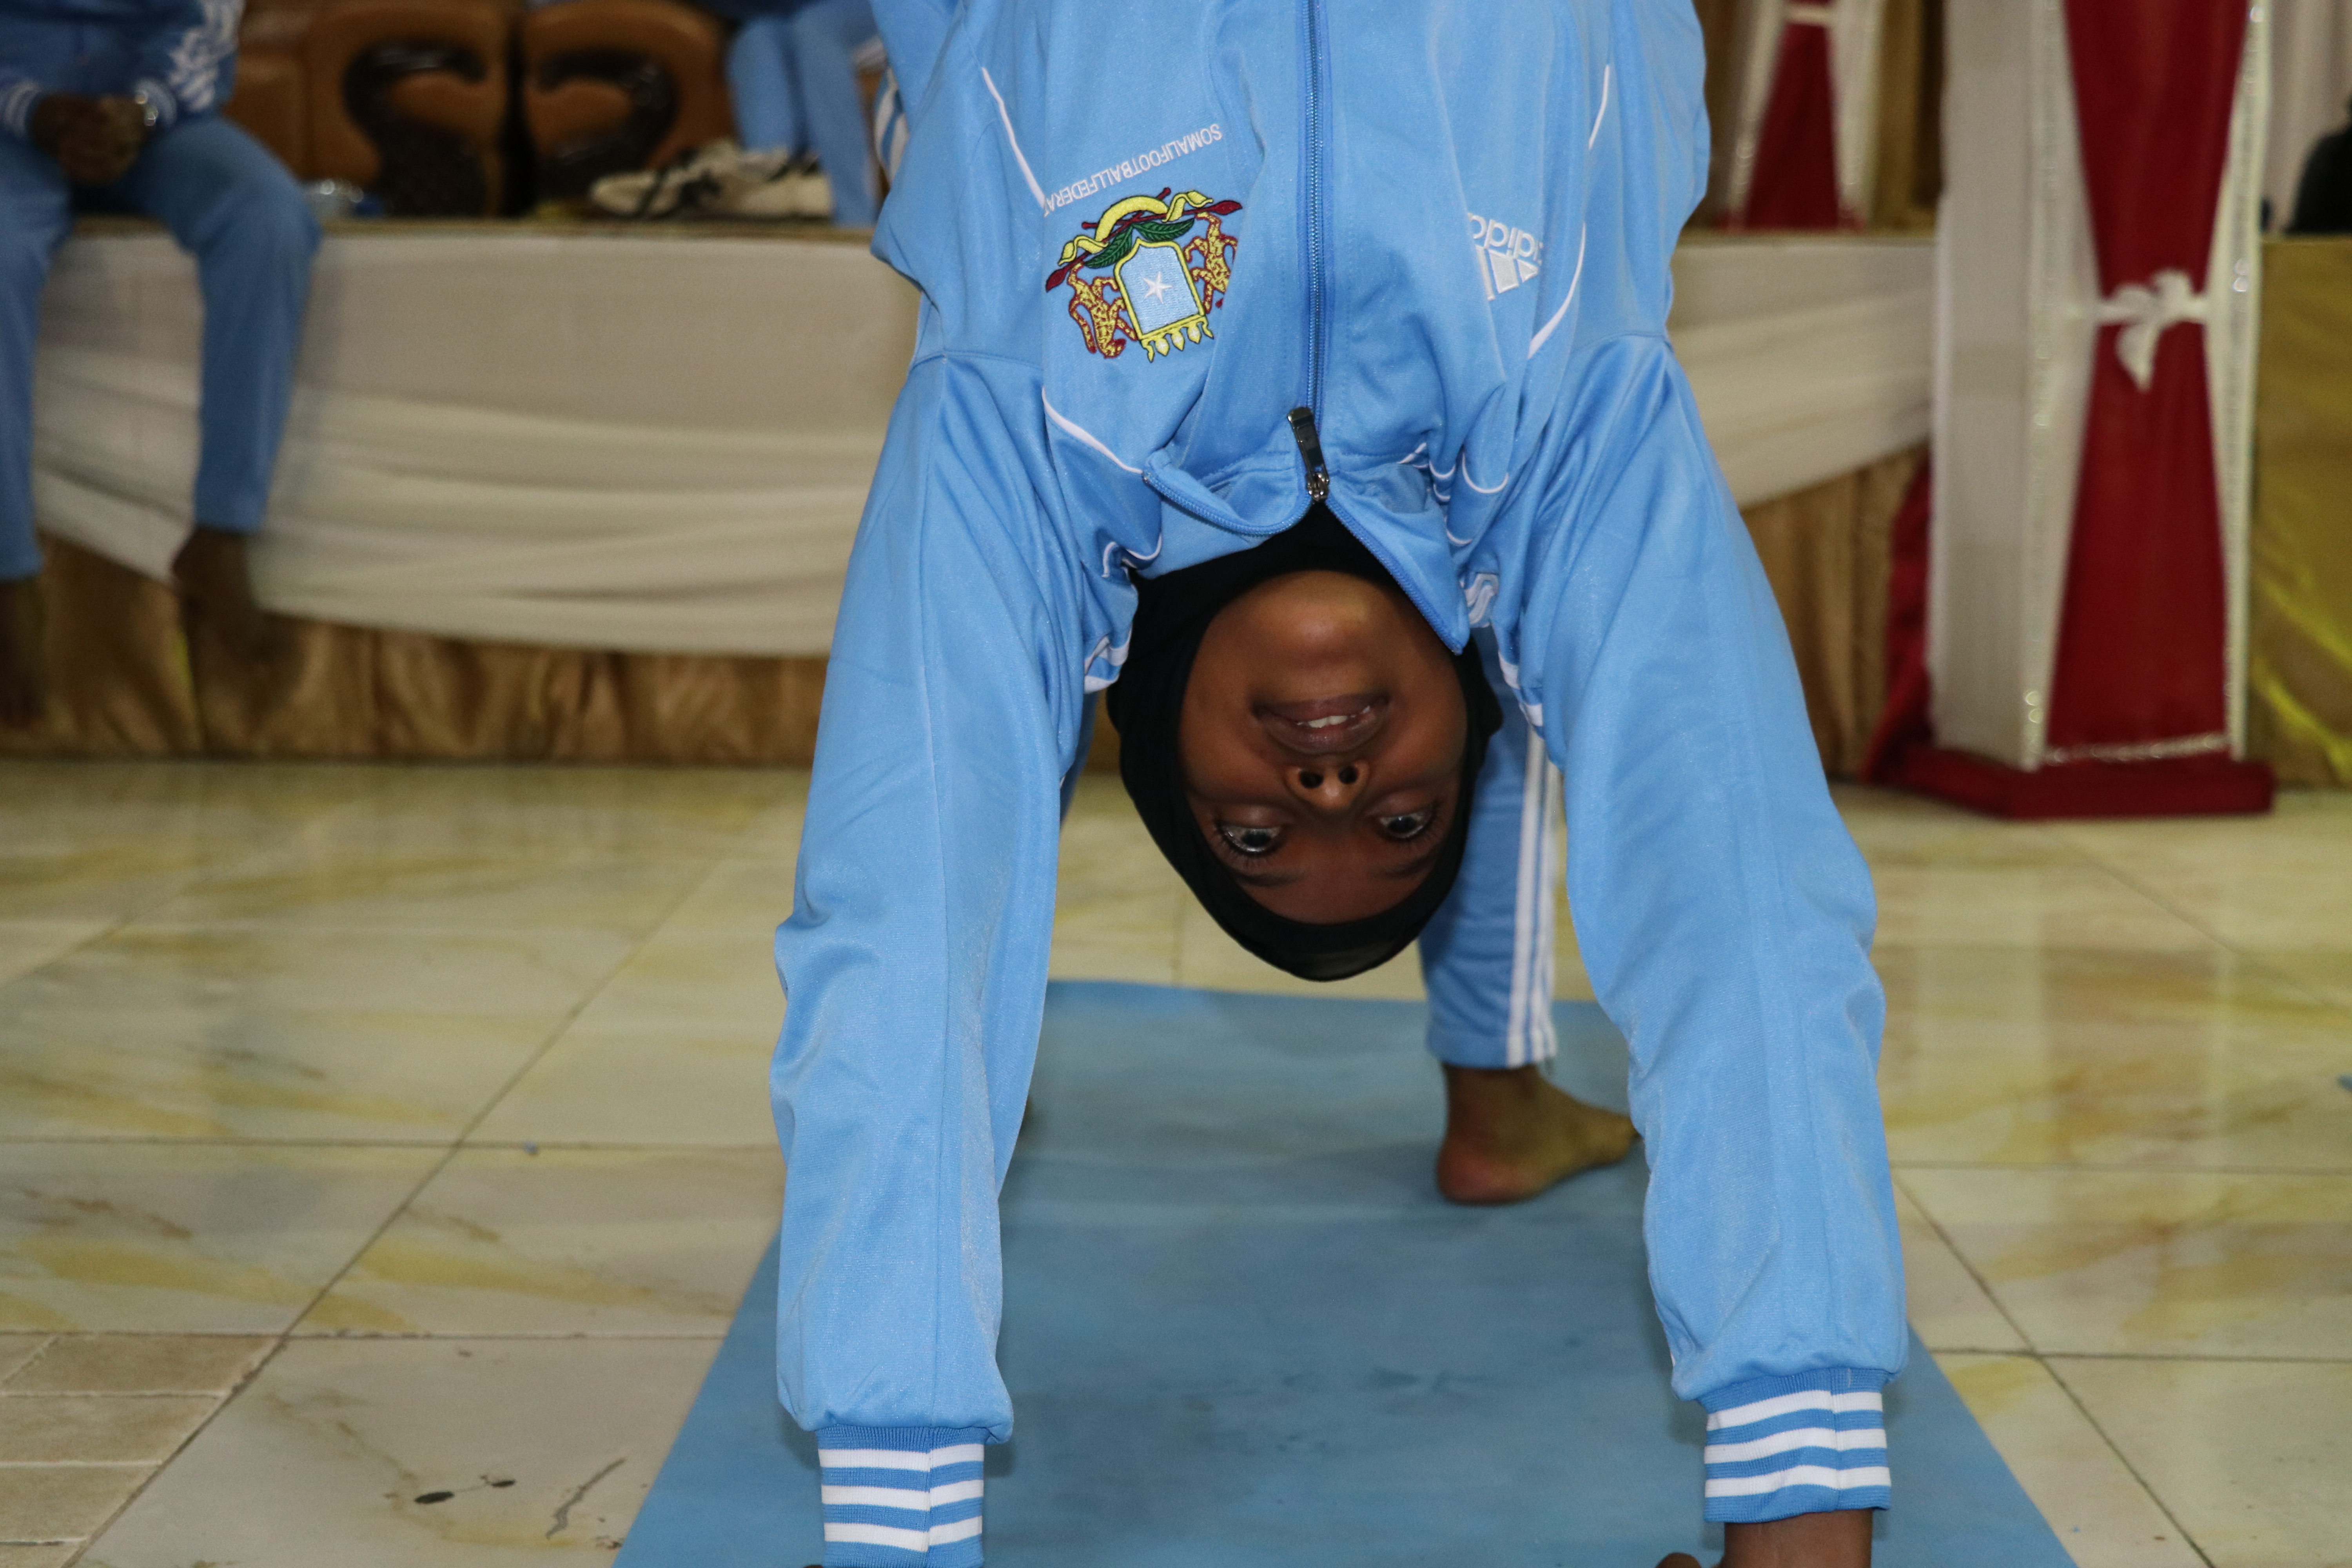 Warrior pose heals Somali women traumatised by war, abuse – Thomson Reuters Foundation (image)